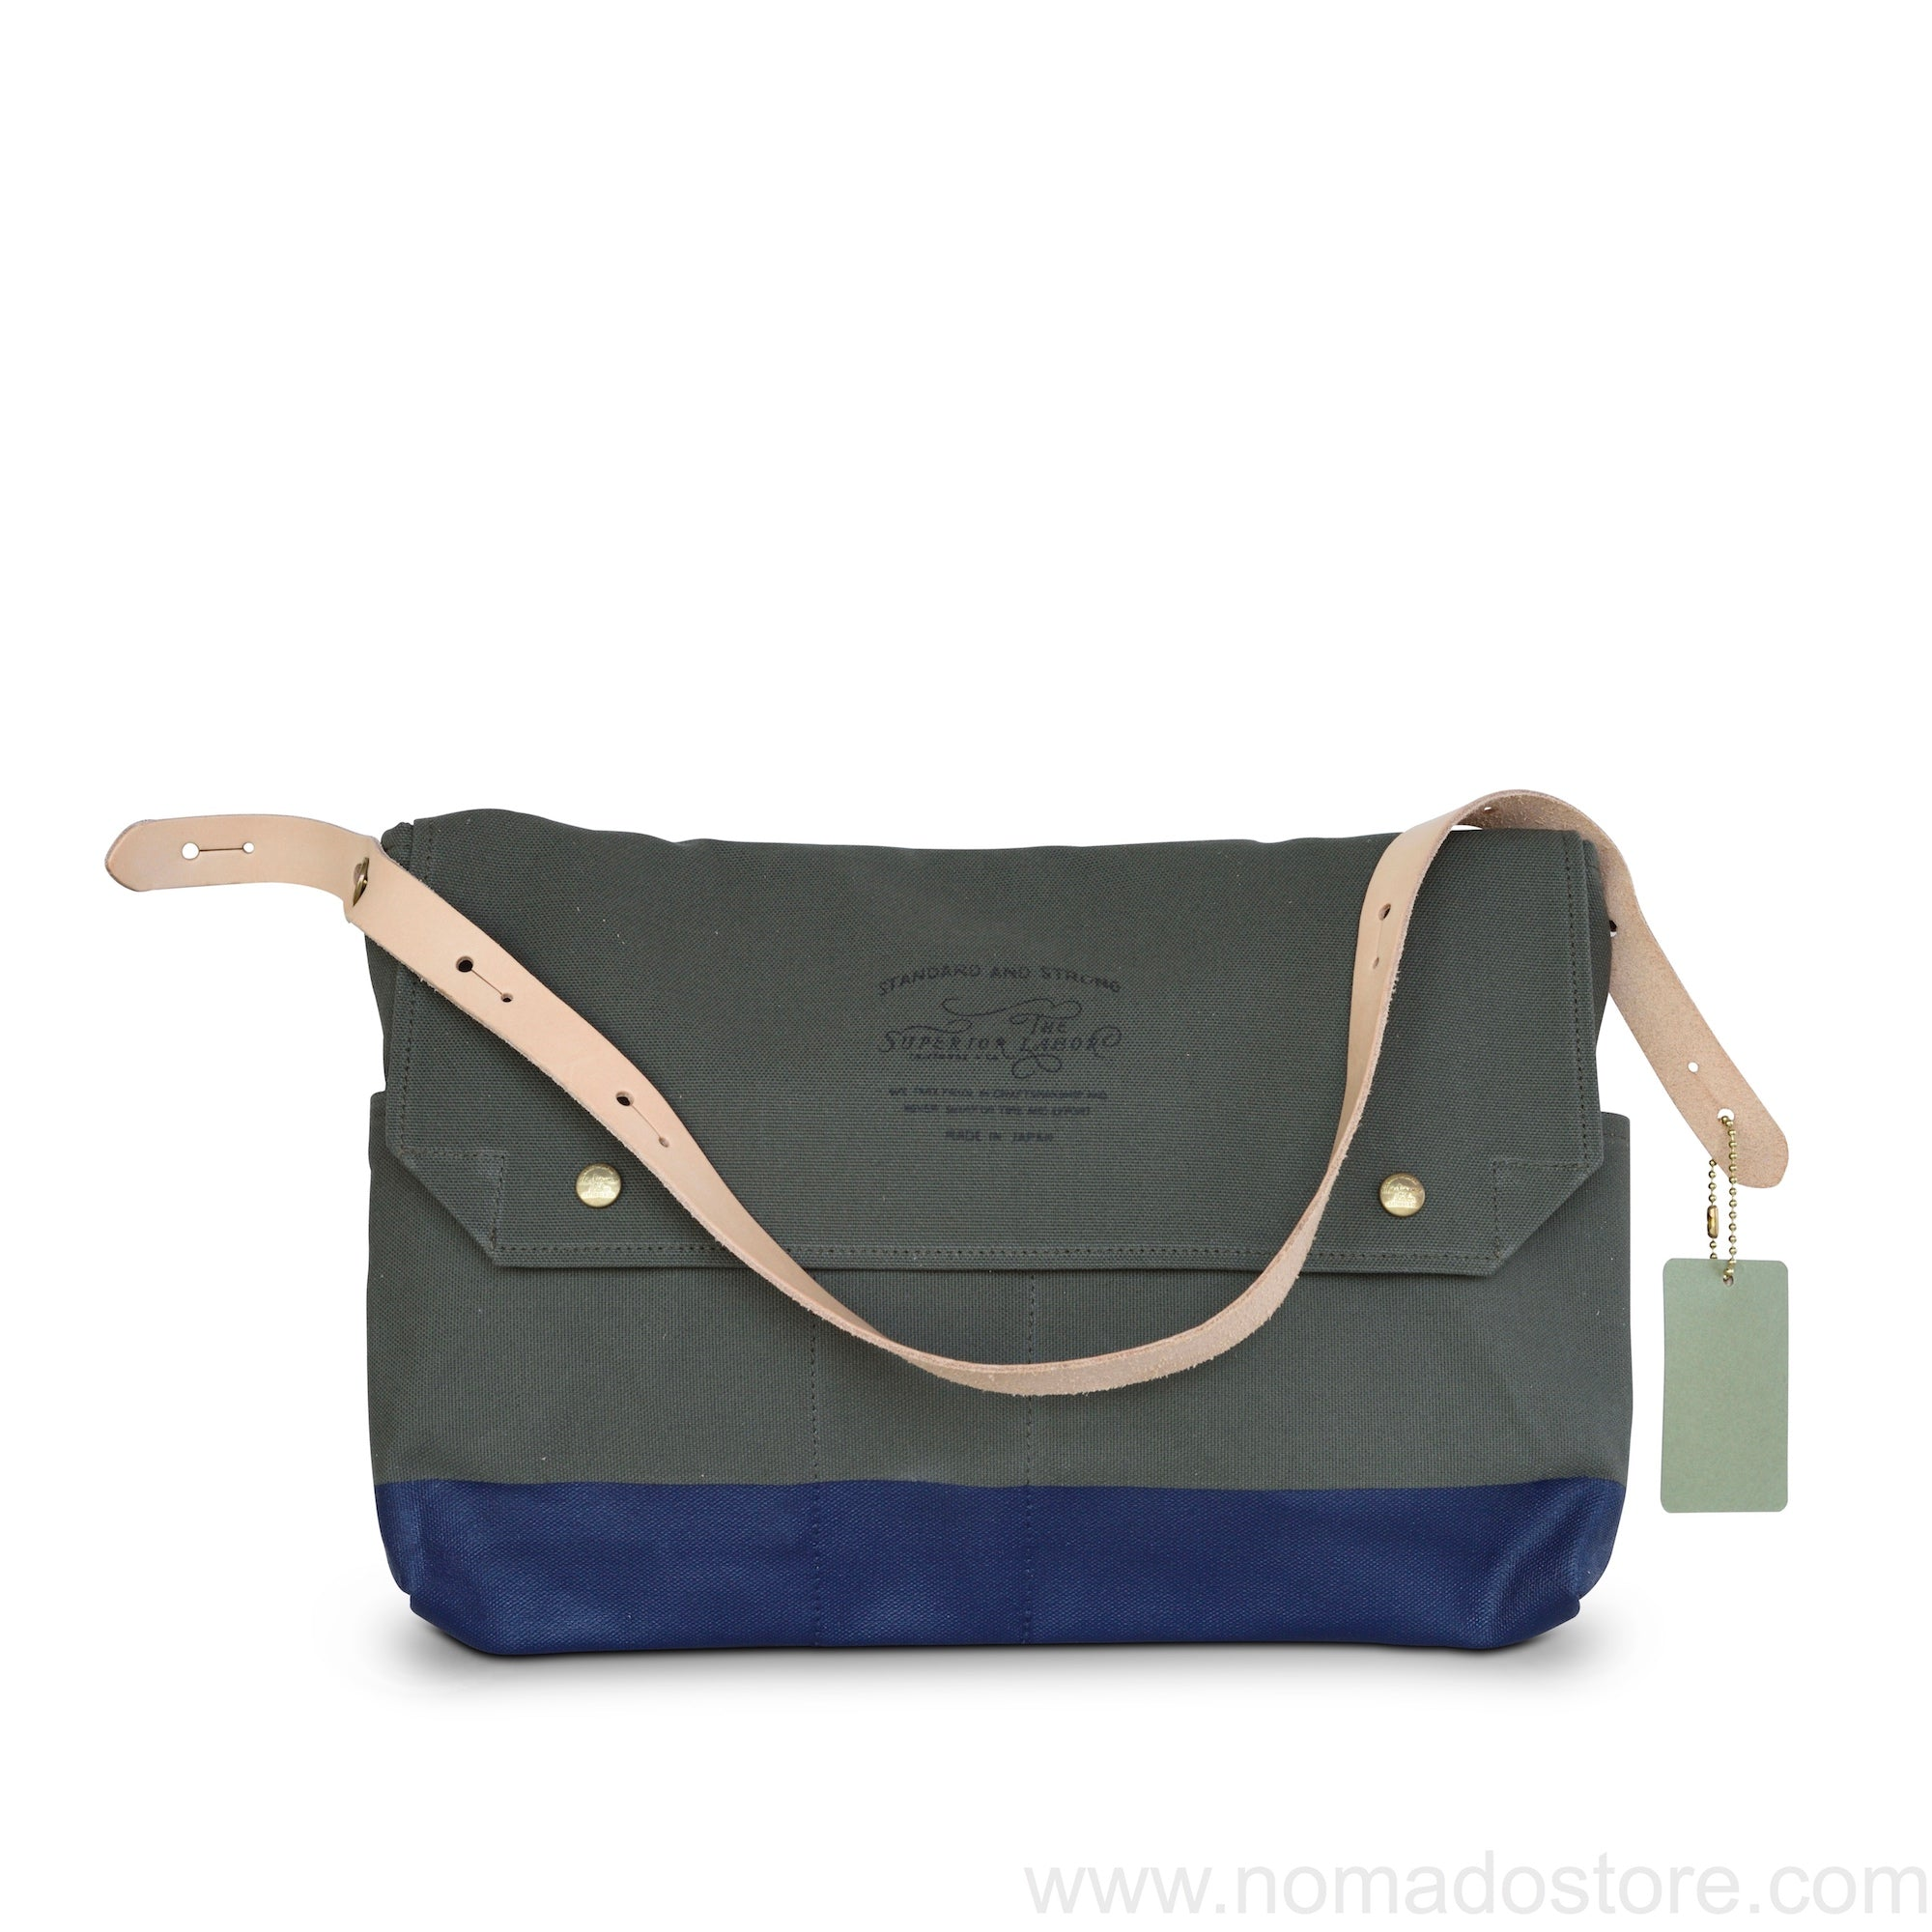 The Superior Labor New Bag in Bag Khaki Canvas Navy Paint - NOMADO Store